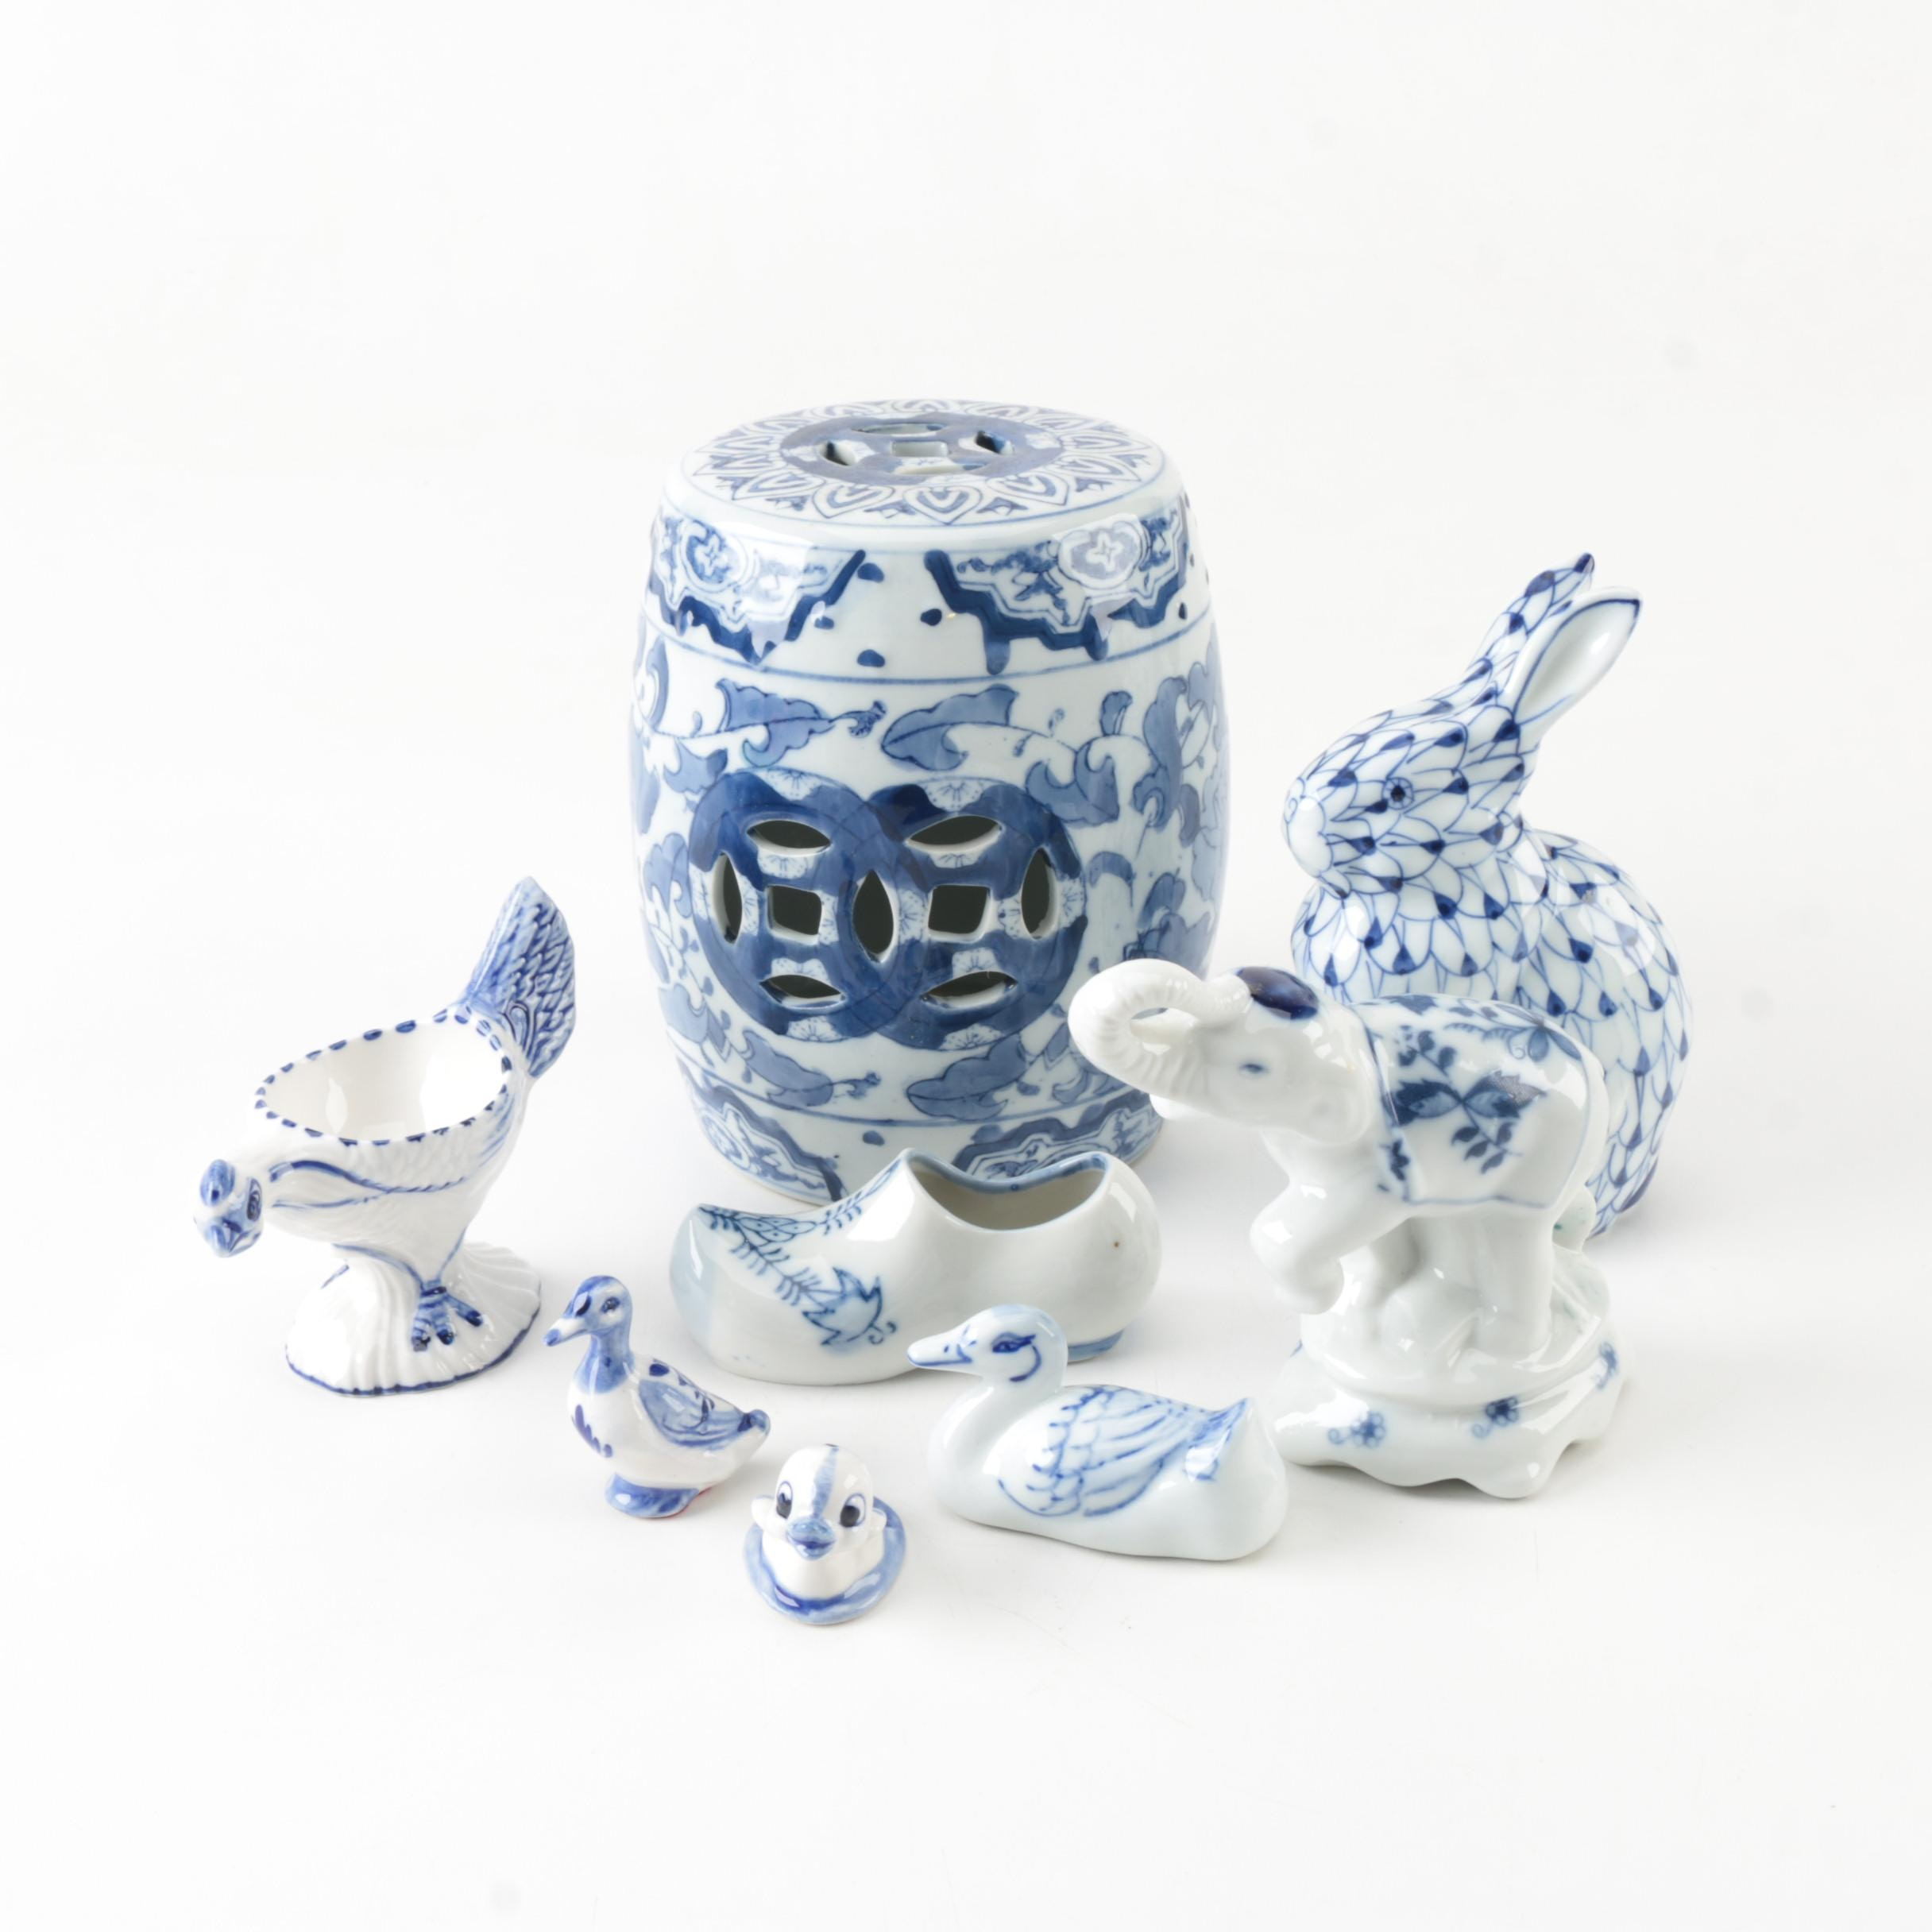 Blue and White Porcelain Figurines and Miniature Garden Seat